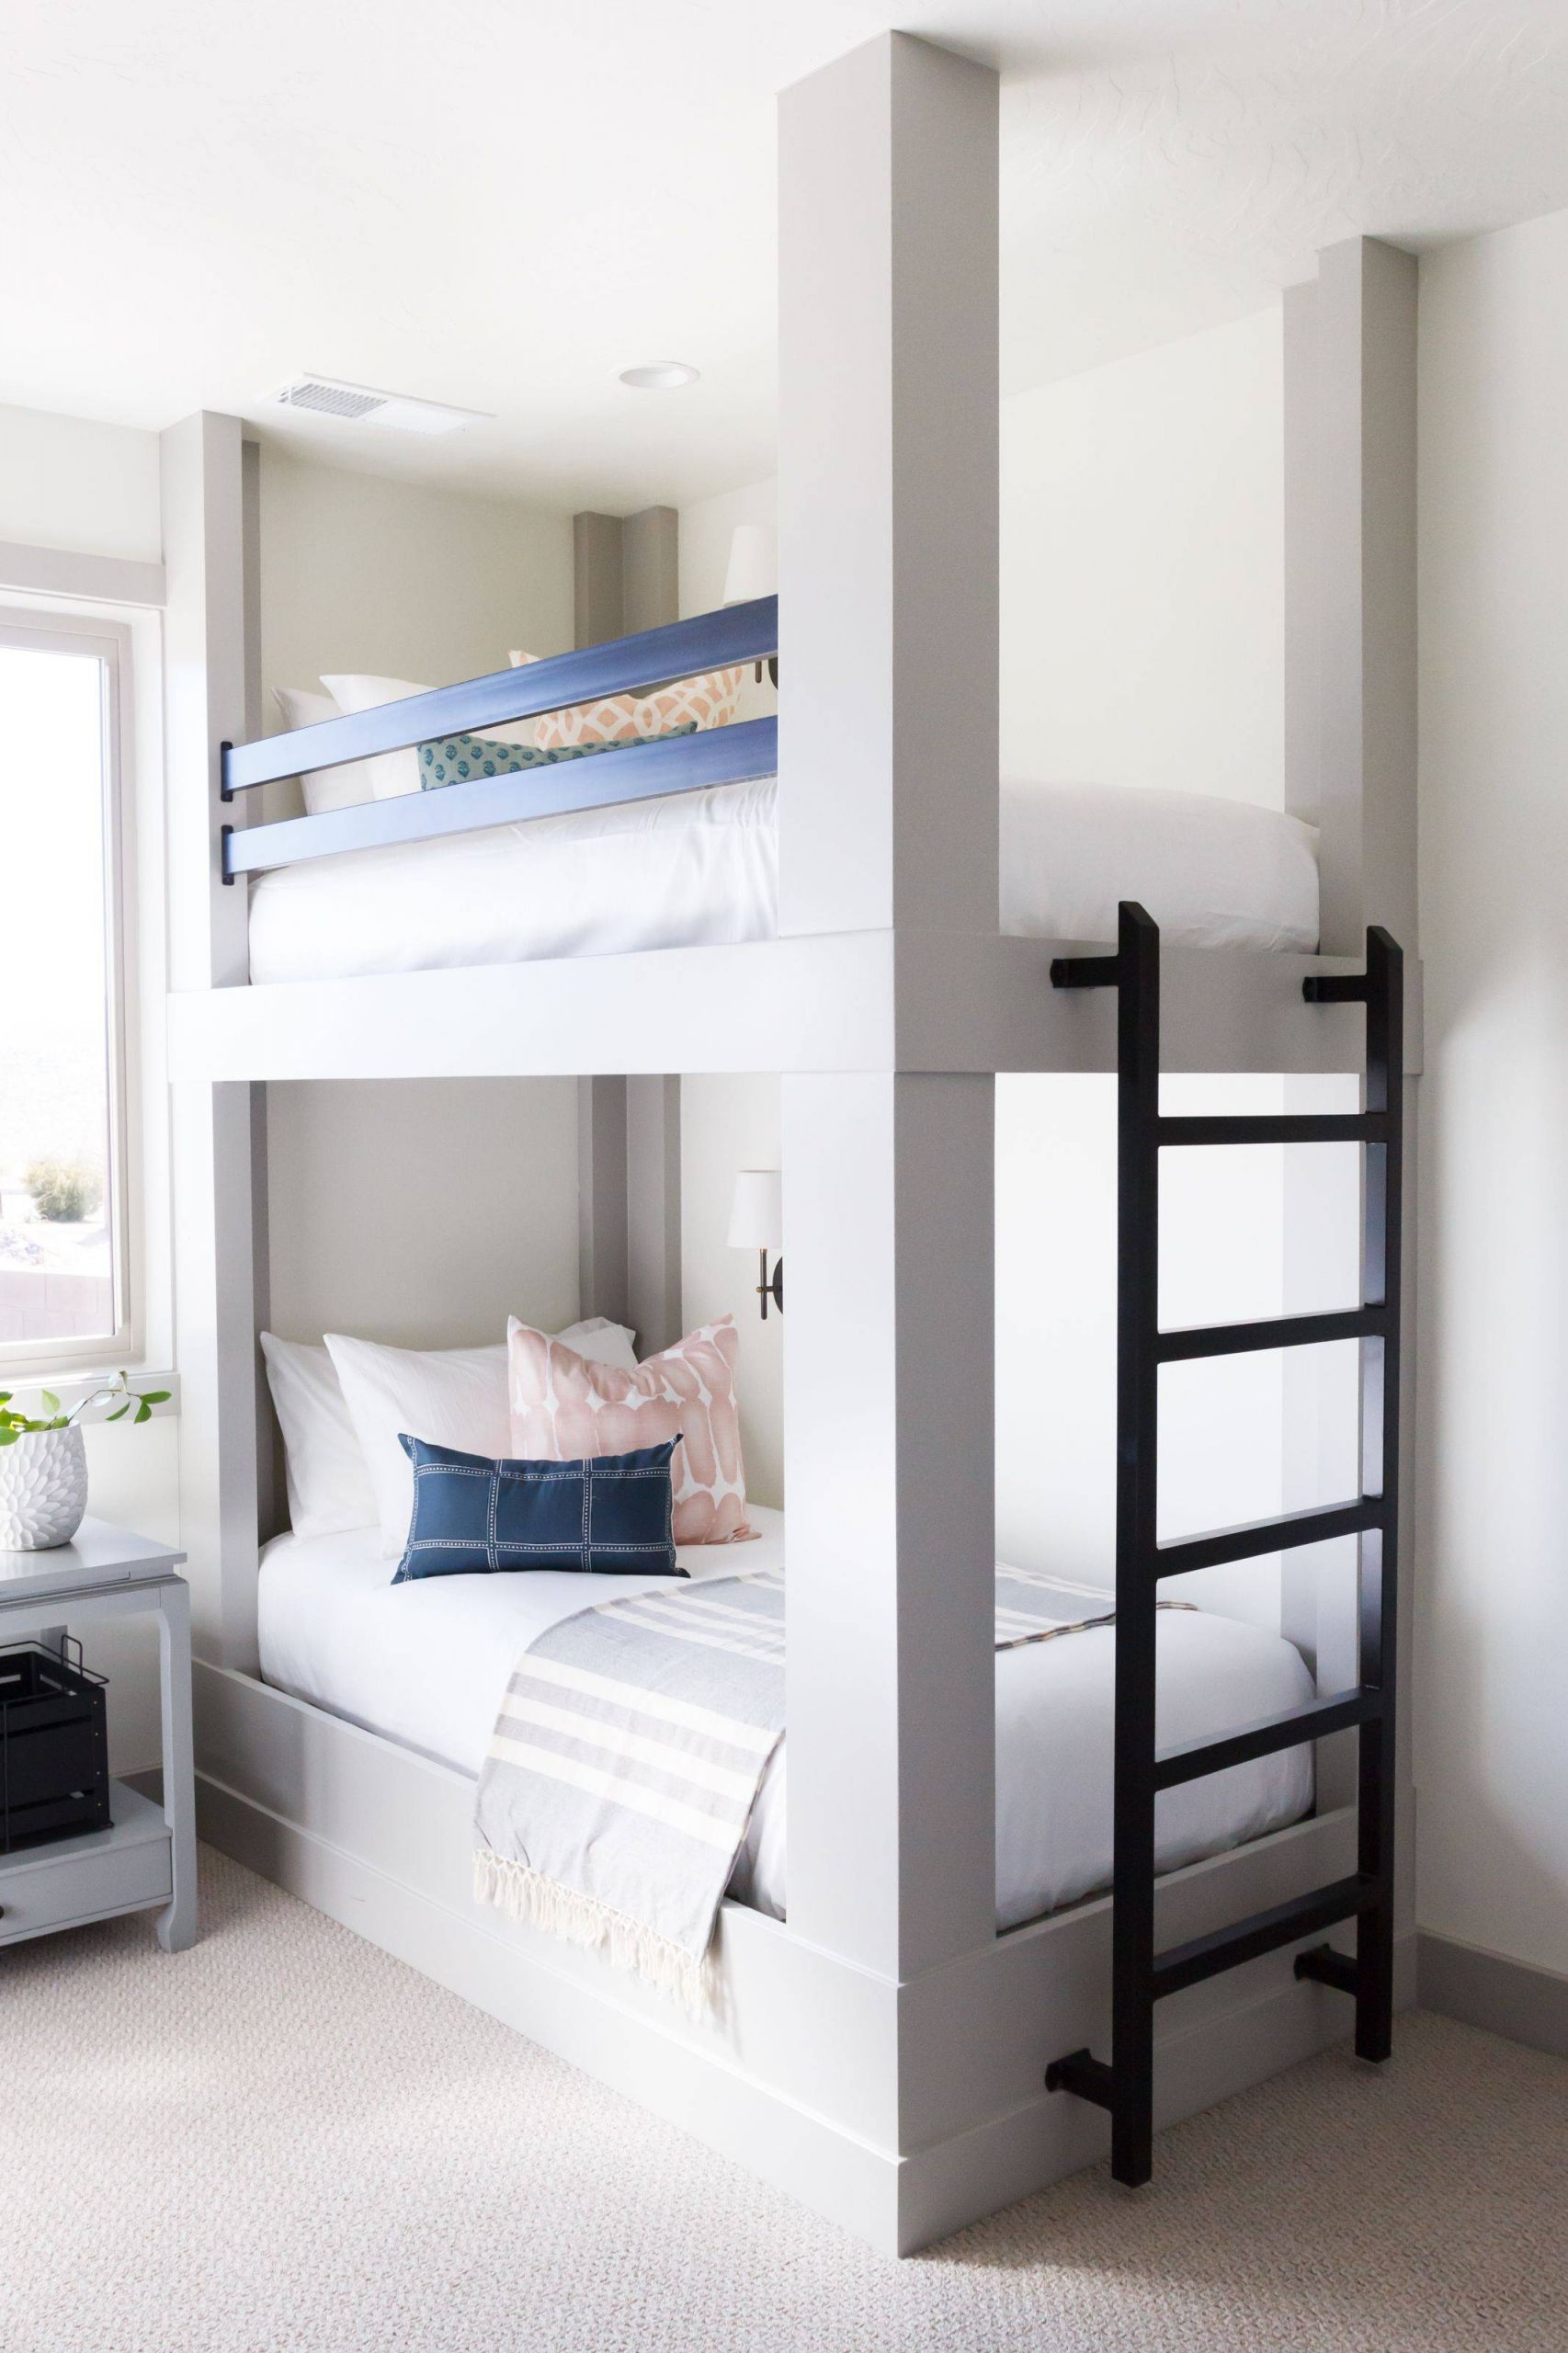 Rooms with Bunk Beds Awesome Salt Box Collective Kids Bedroom